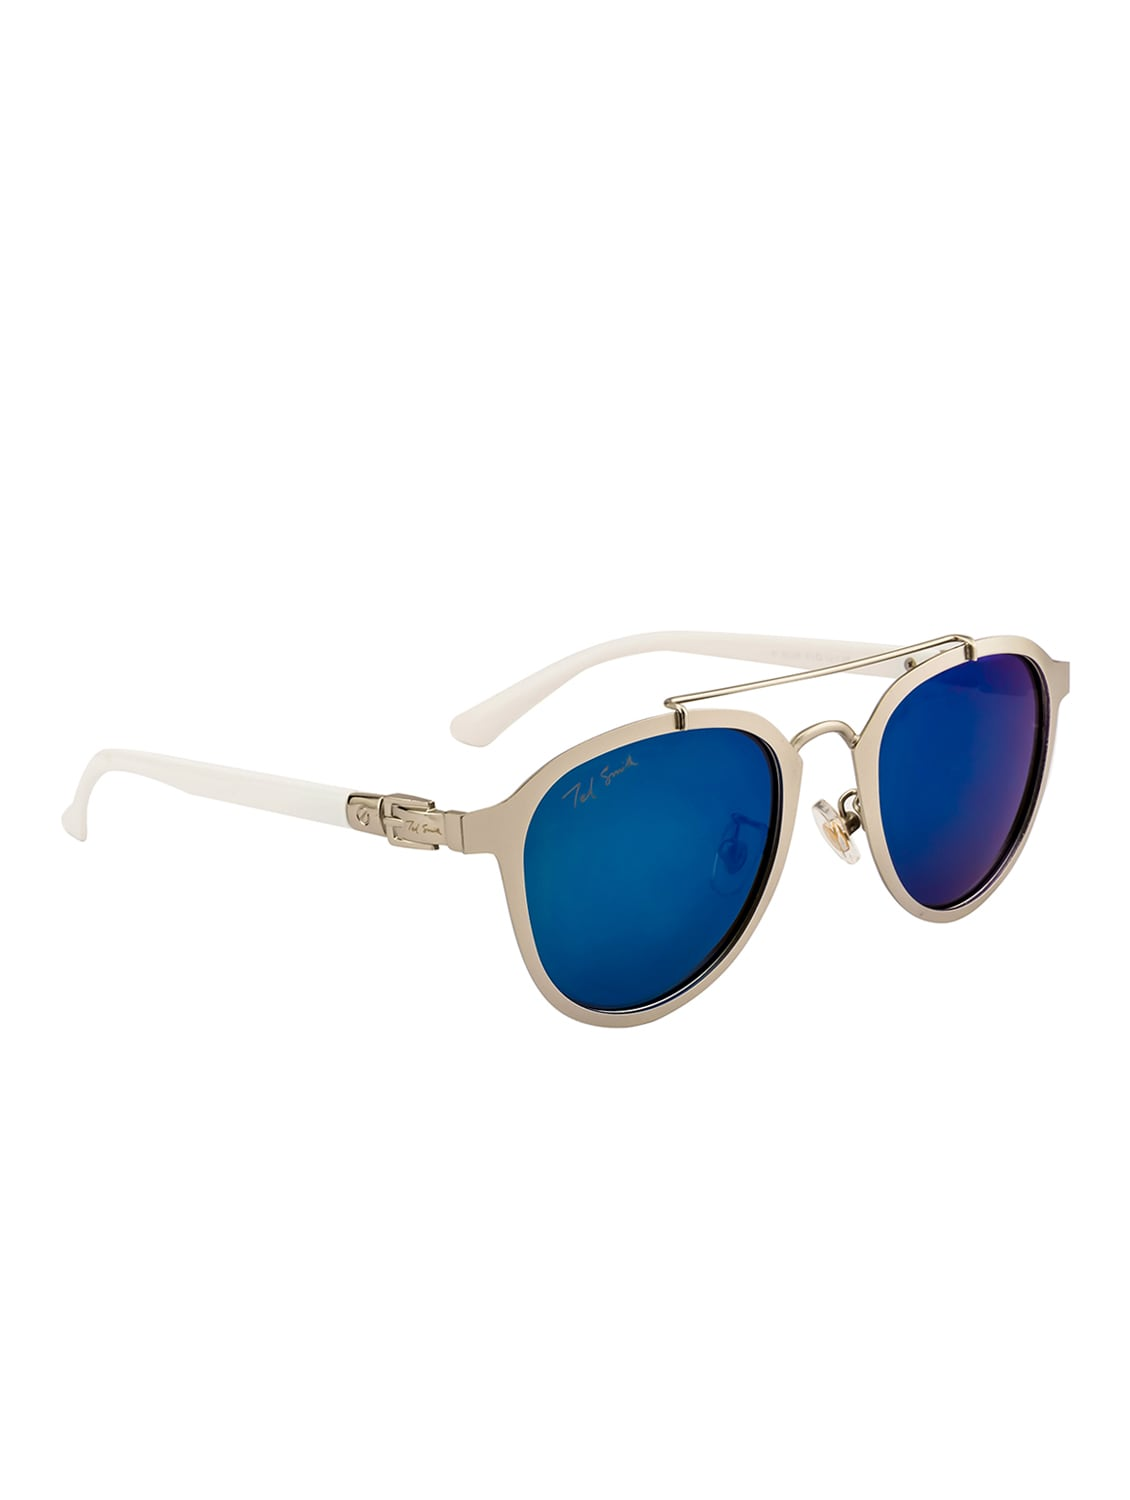 b9b917a9a9 Buy Ted Smith Unisex Aviator Silver Polarized Sunglasses for Men from Ted  Smith for ₹1501 at 65% off